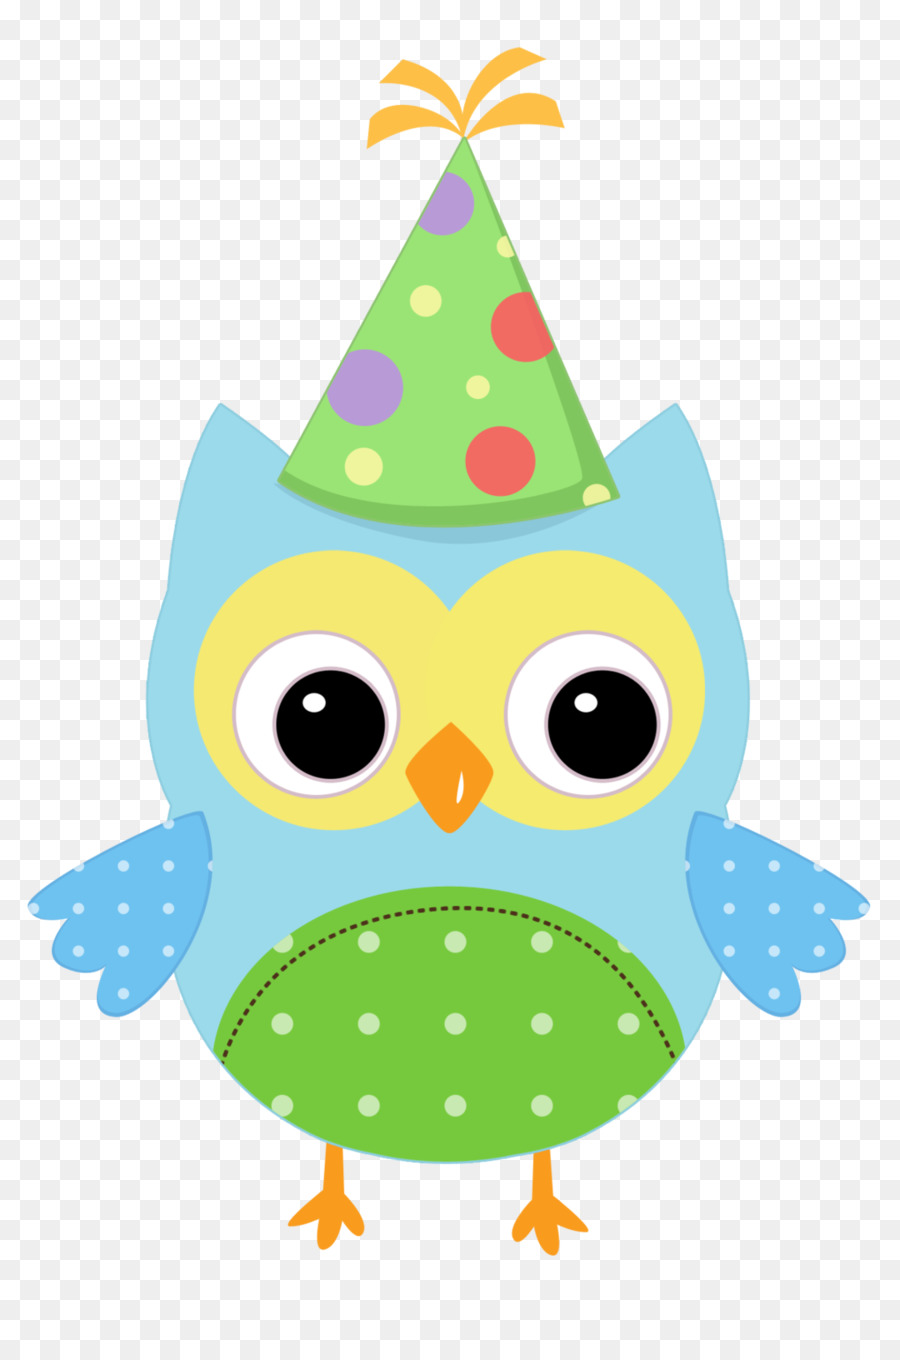 Birthday owls clipart transparent library Birthday Party Background clipart - Owl, Birthday, Party ... transparent library